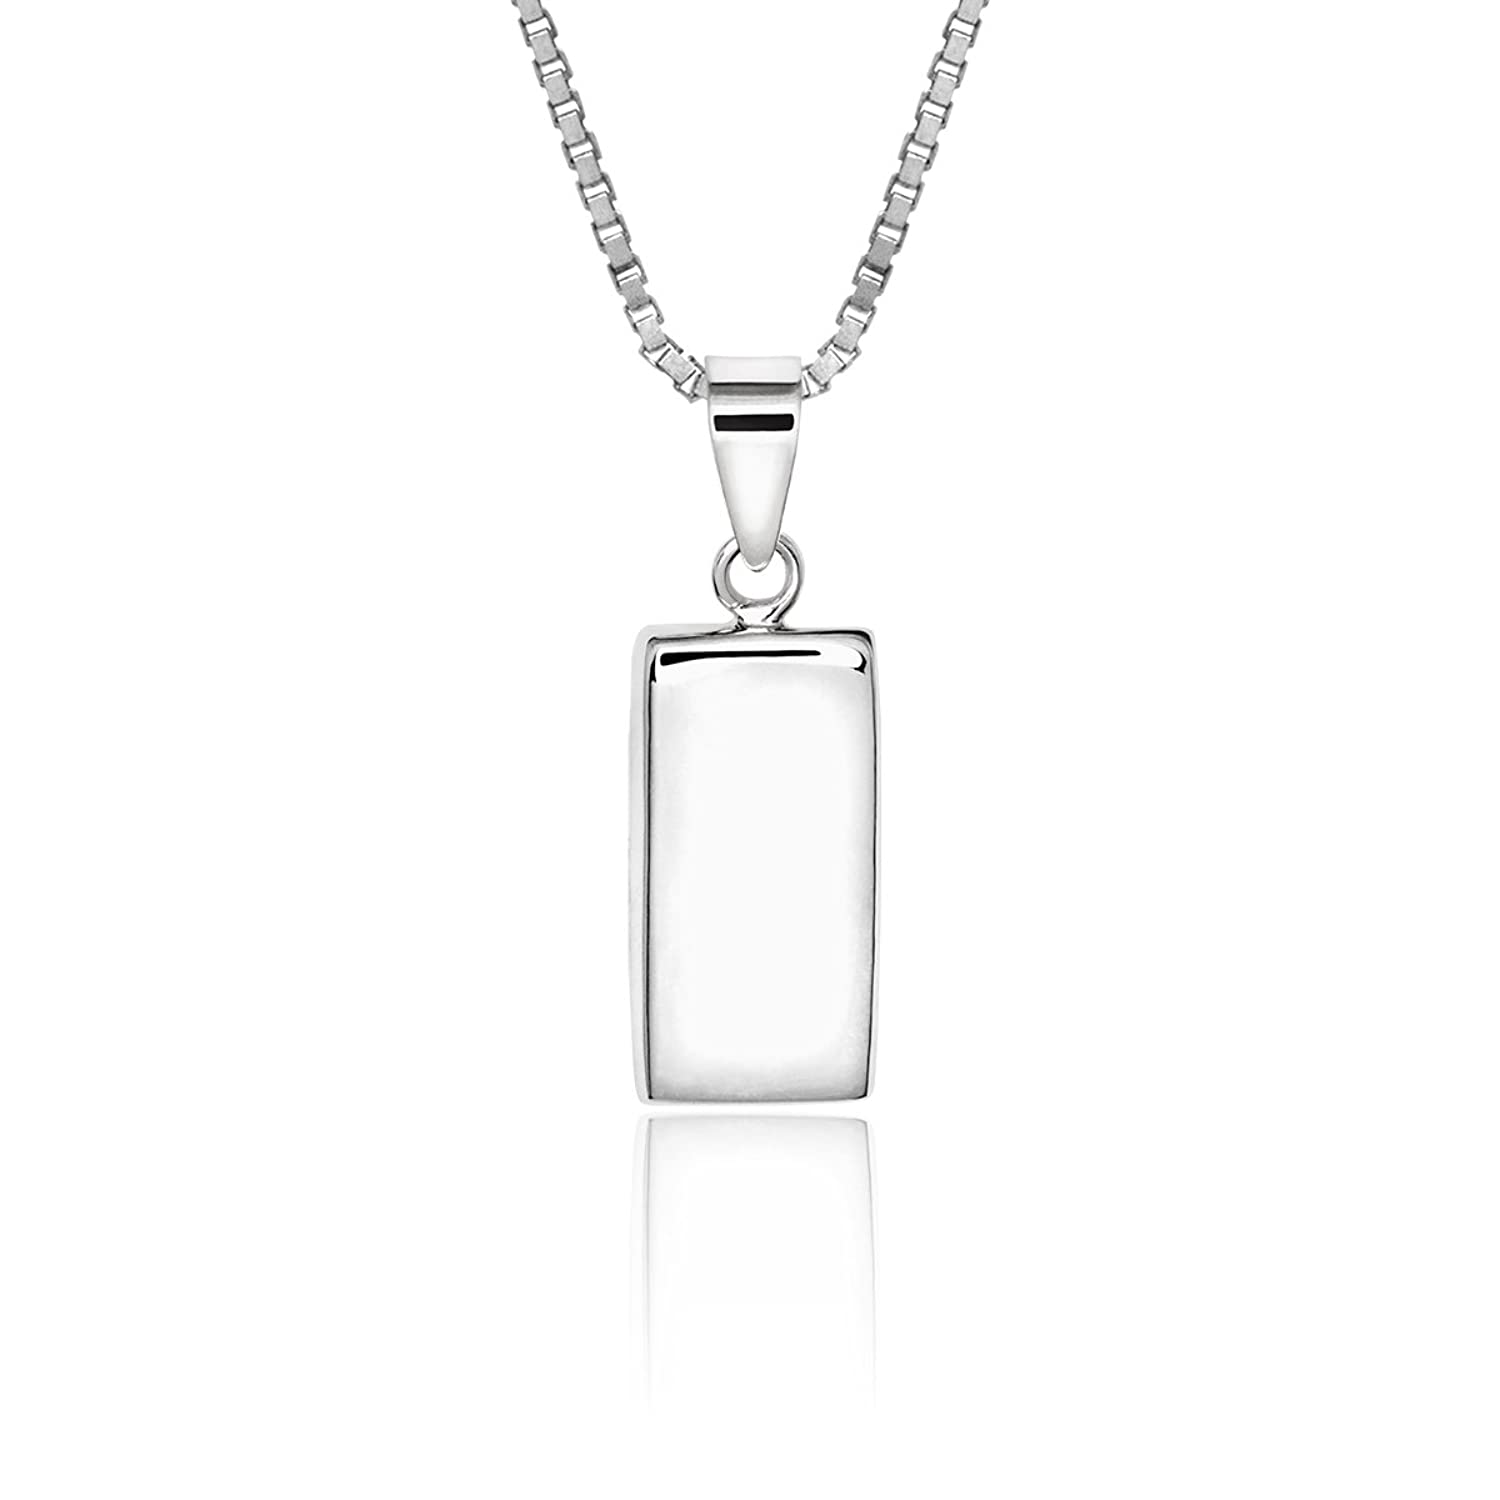 fashion necklaces necklace for store versace pendant en medusa jewelry rectangle dmtd men rectanglemedusapendantnecklace accessories online us